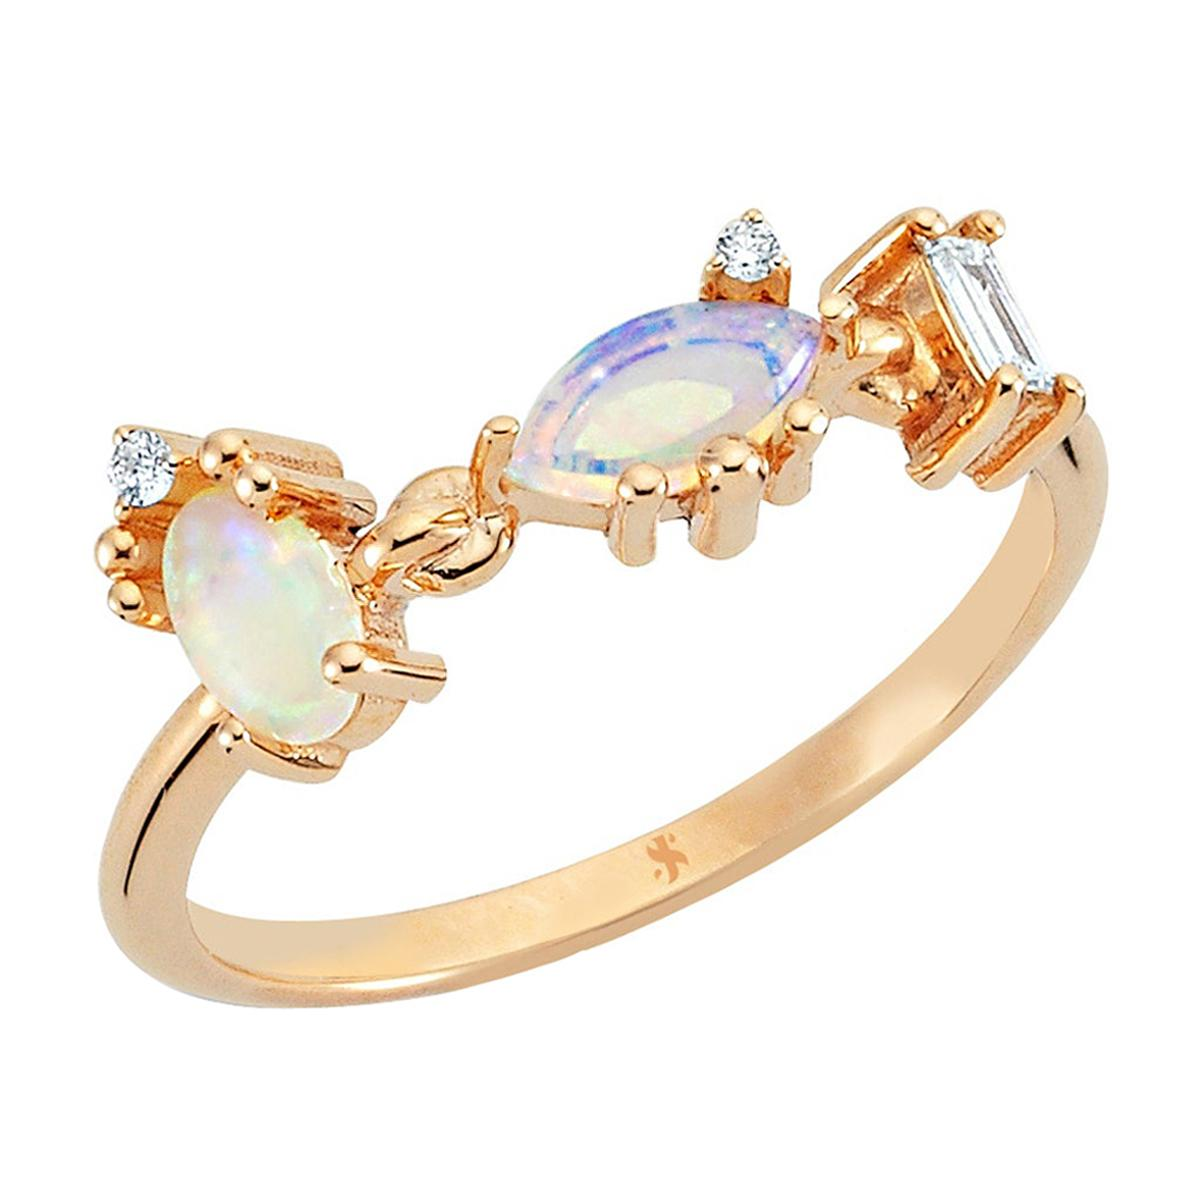 Cacia Ring in 14k Rose Gold with White Opal & White and Baguette Diamond